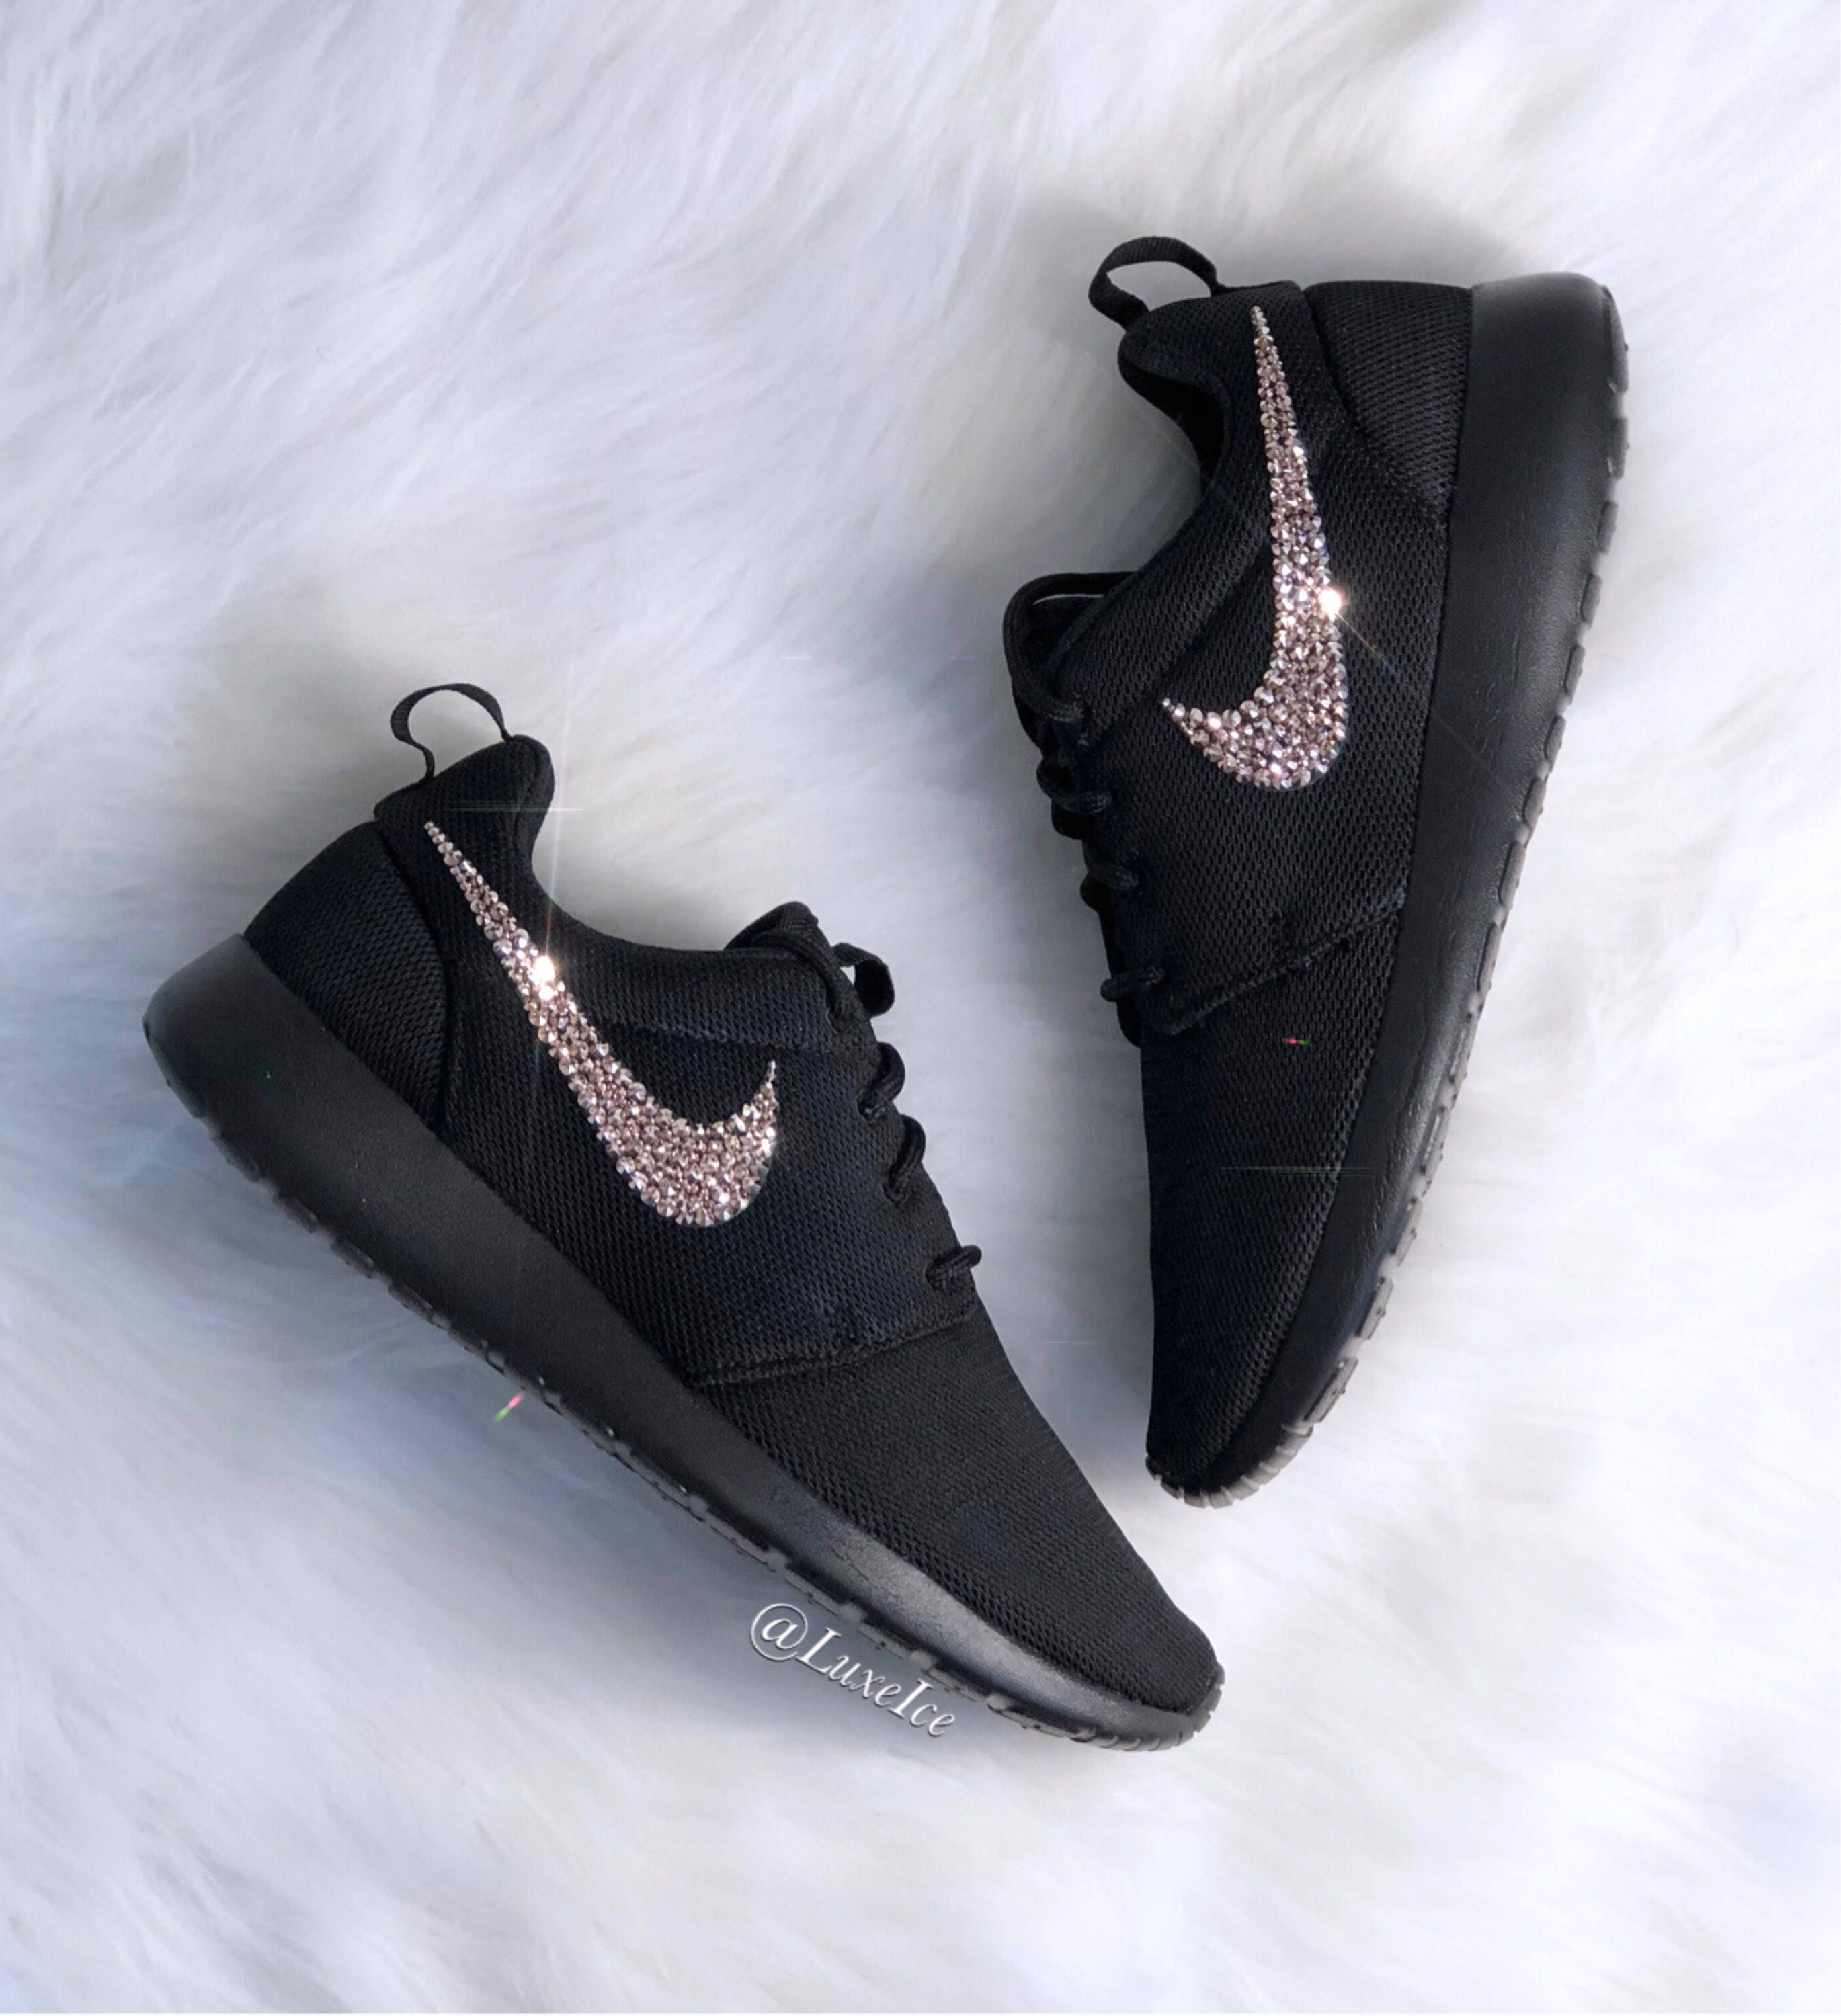 da5b210b4135 Women s Swarovski Nike Roshe One Black customized with